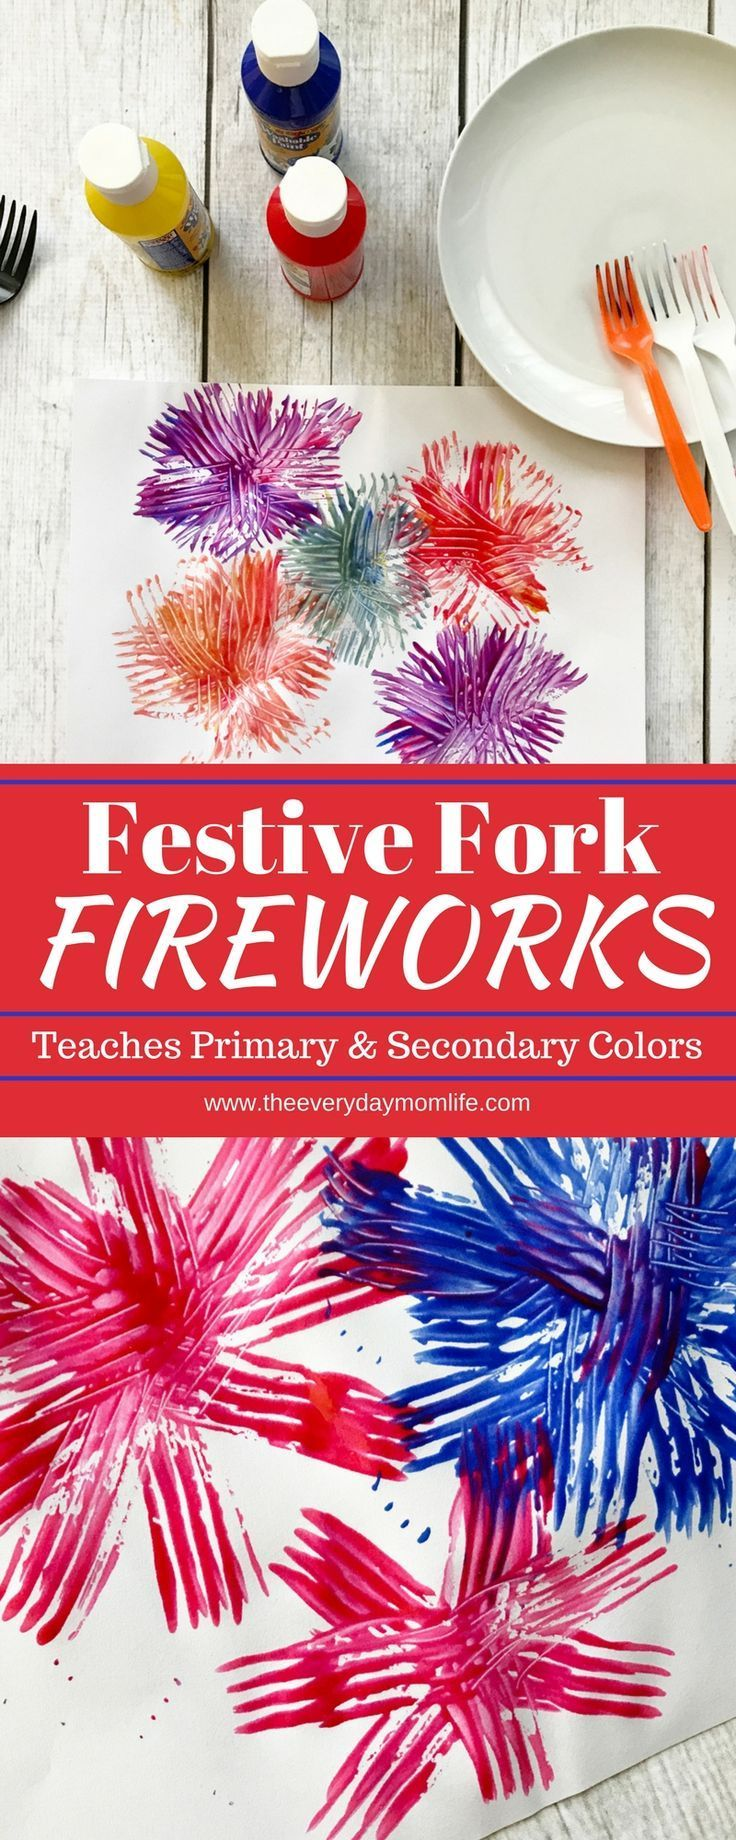 Festive Fork Fireworks teaches color combinations